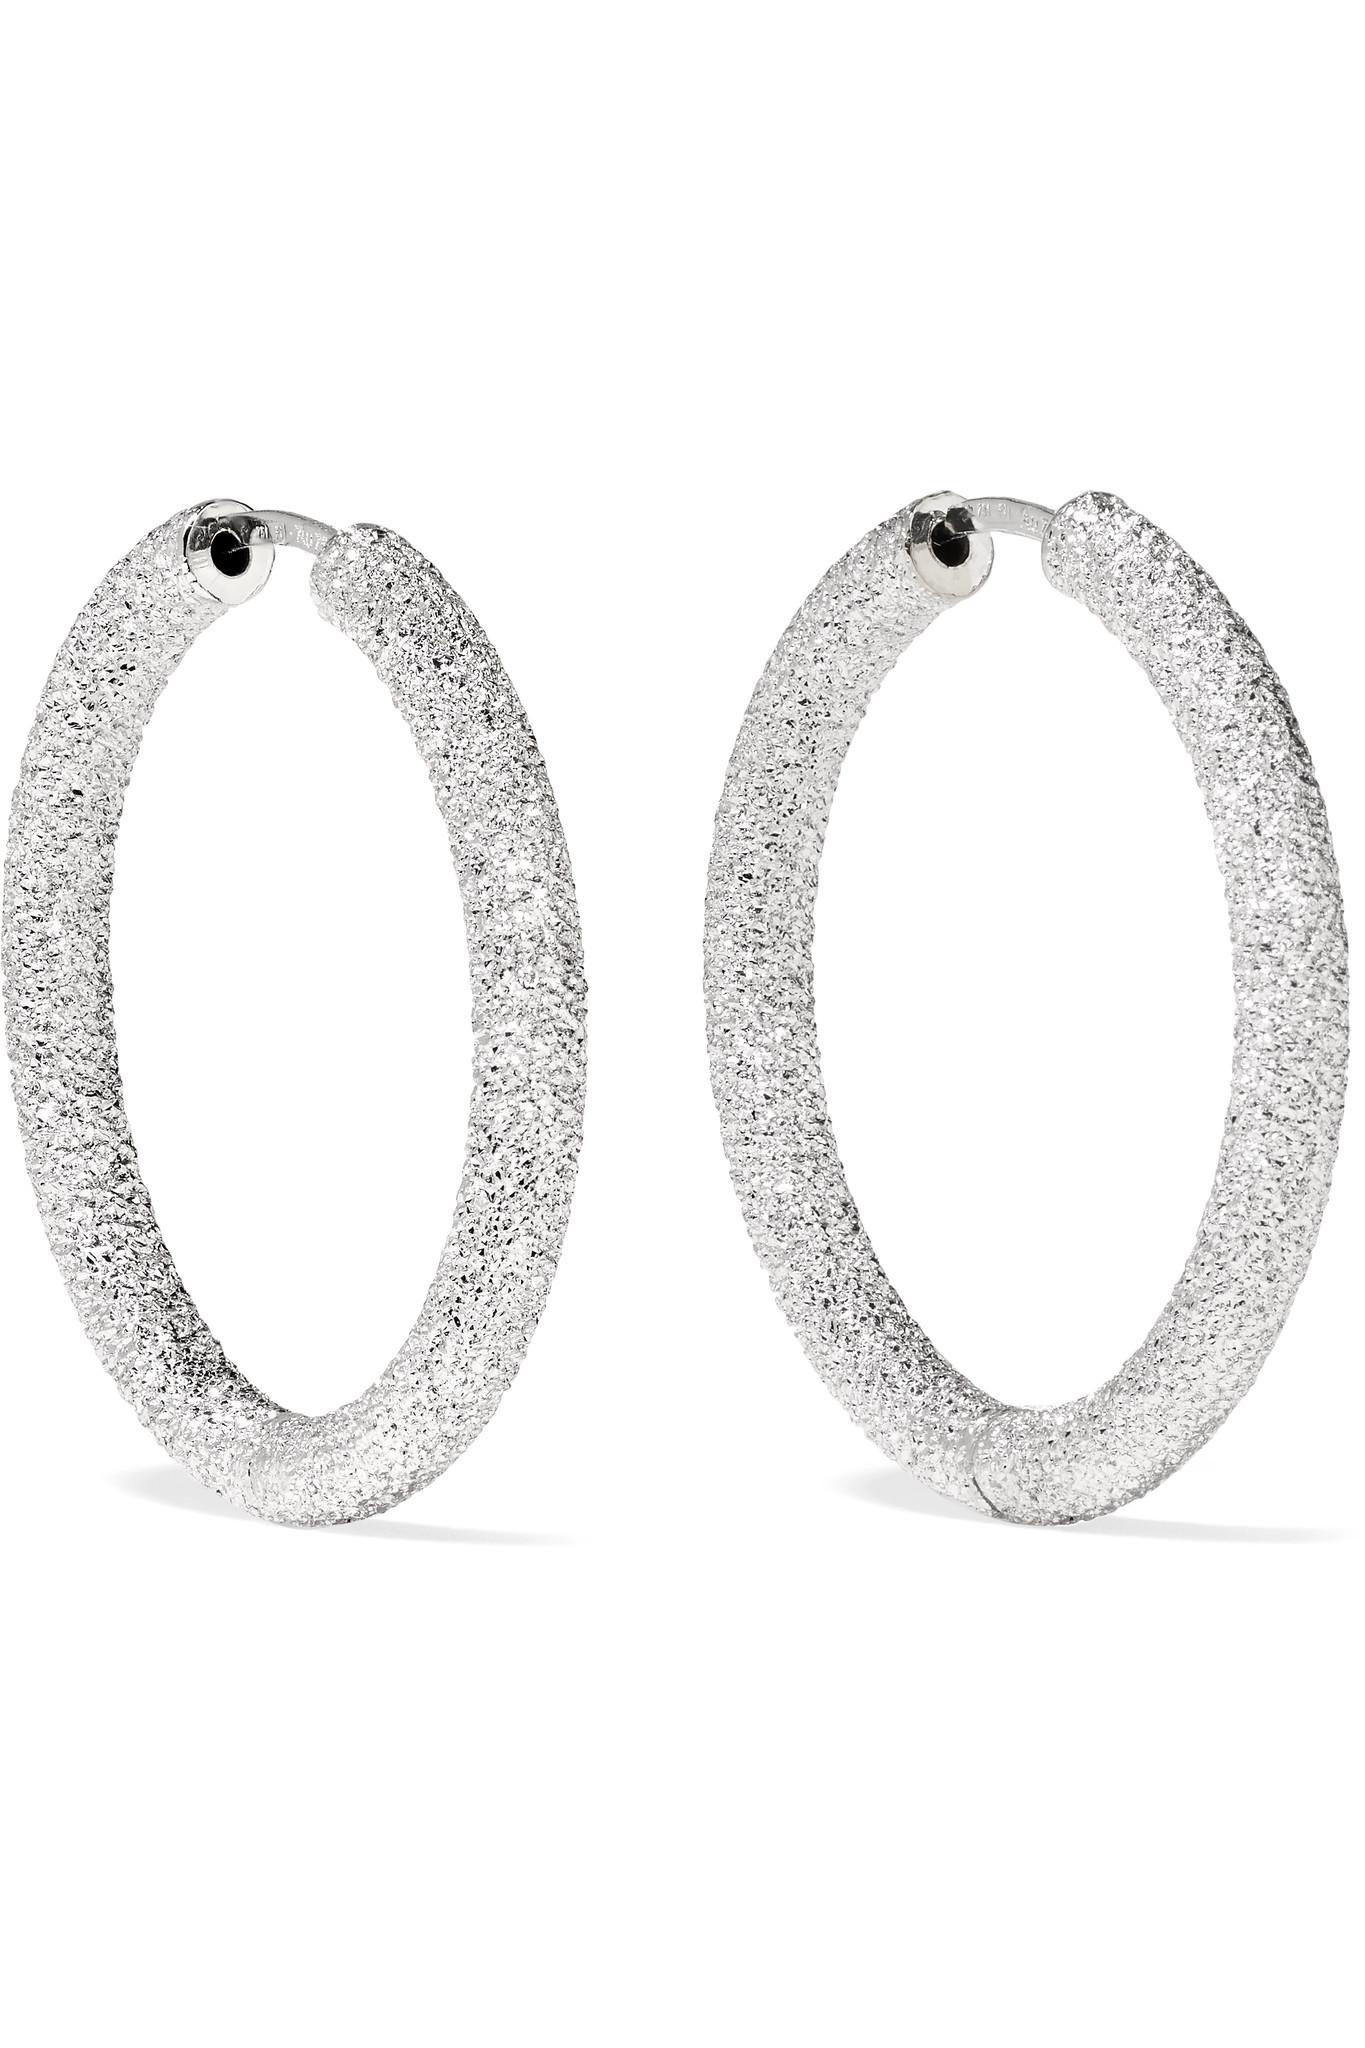 Carolina Bucci Extra Small Florentine 18-karat White Gold Earrings zNNVgKA